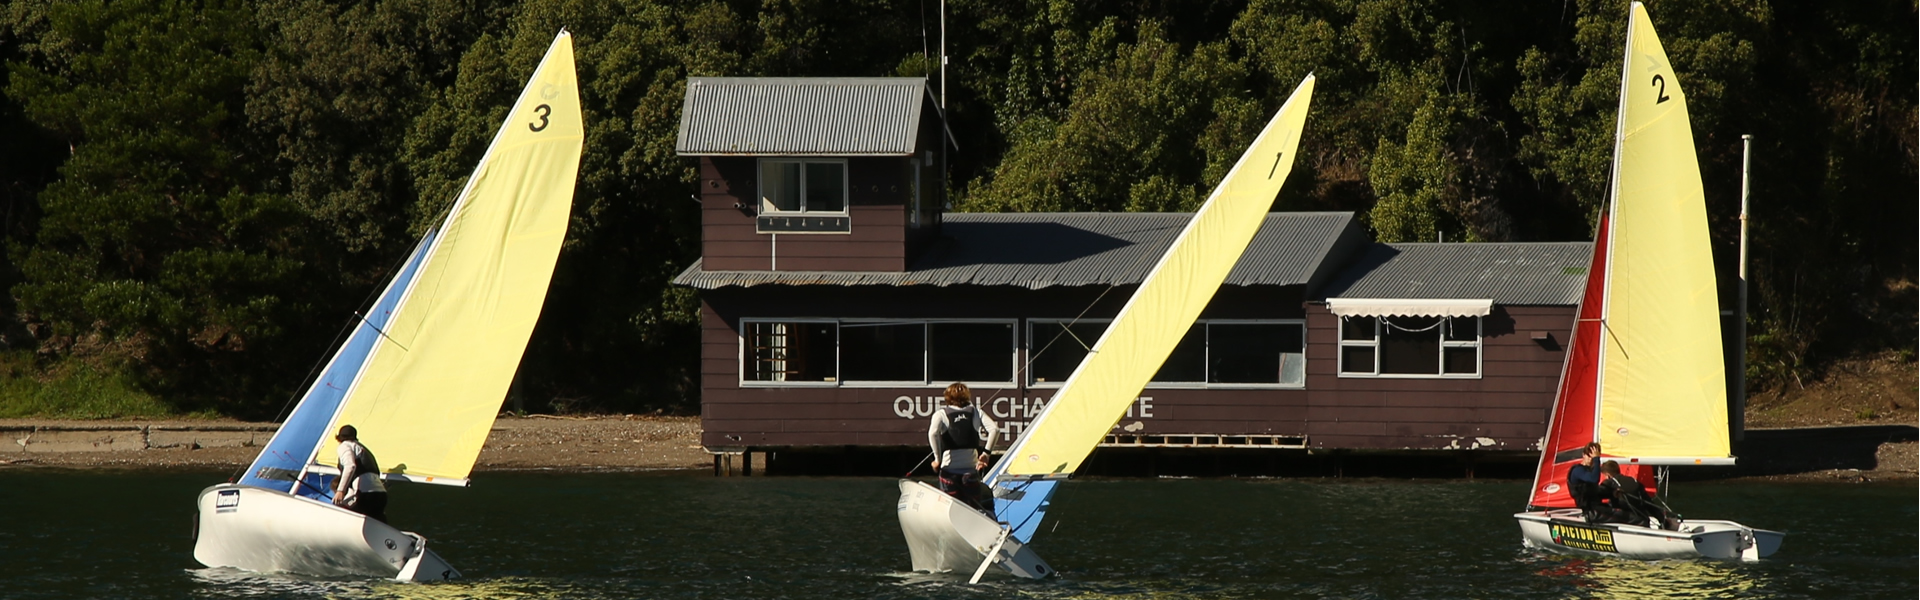 Sailing Boat Activities At Parklands Marina Holiday Park In Picton NZ